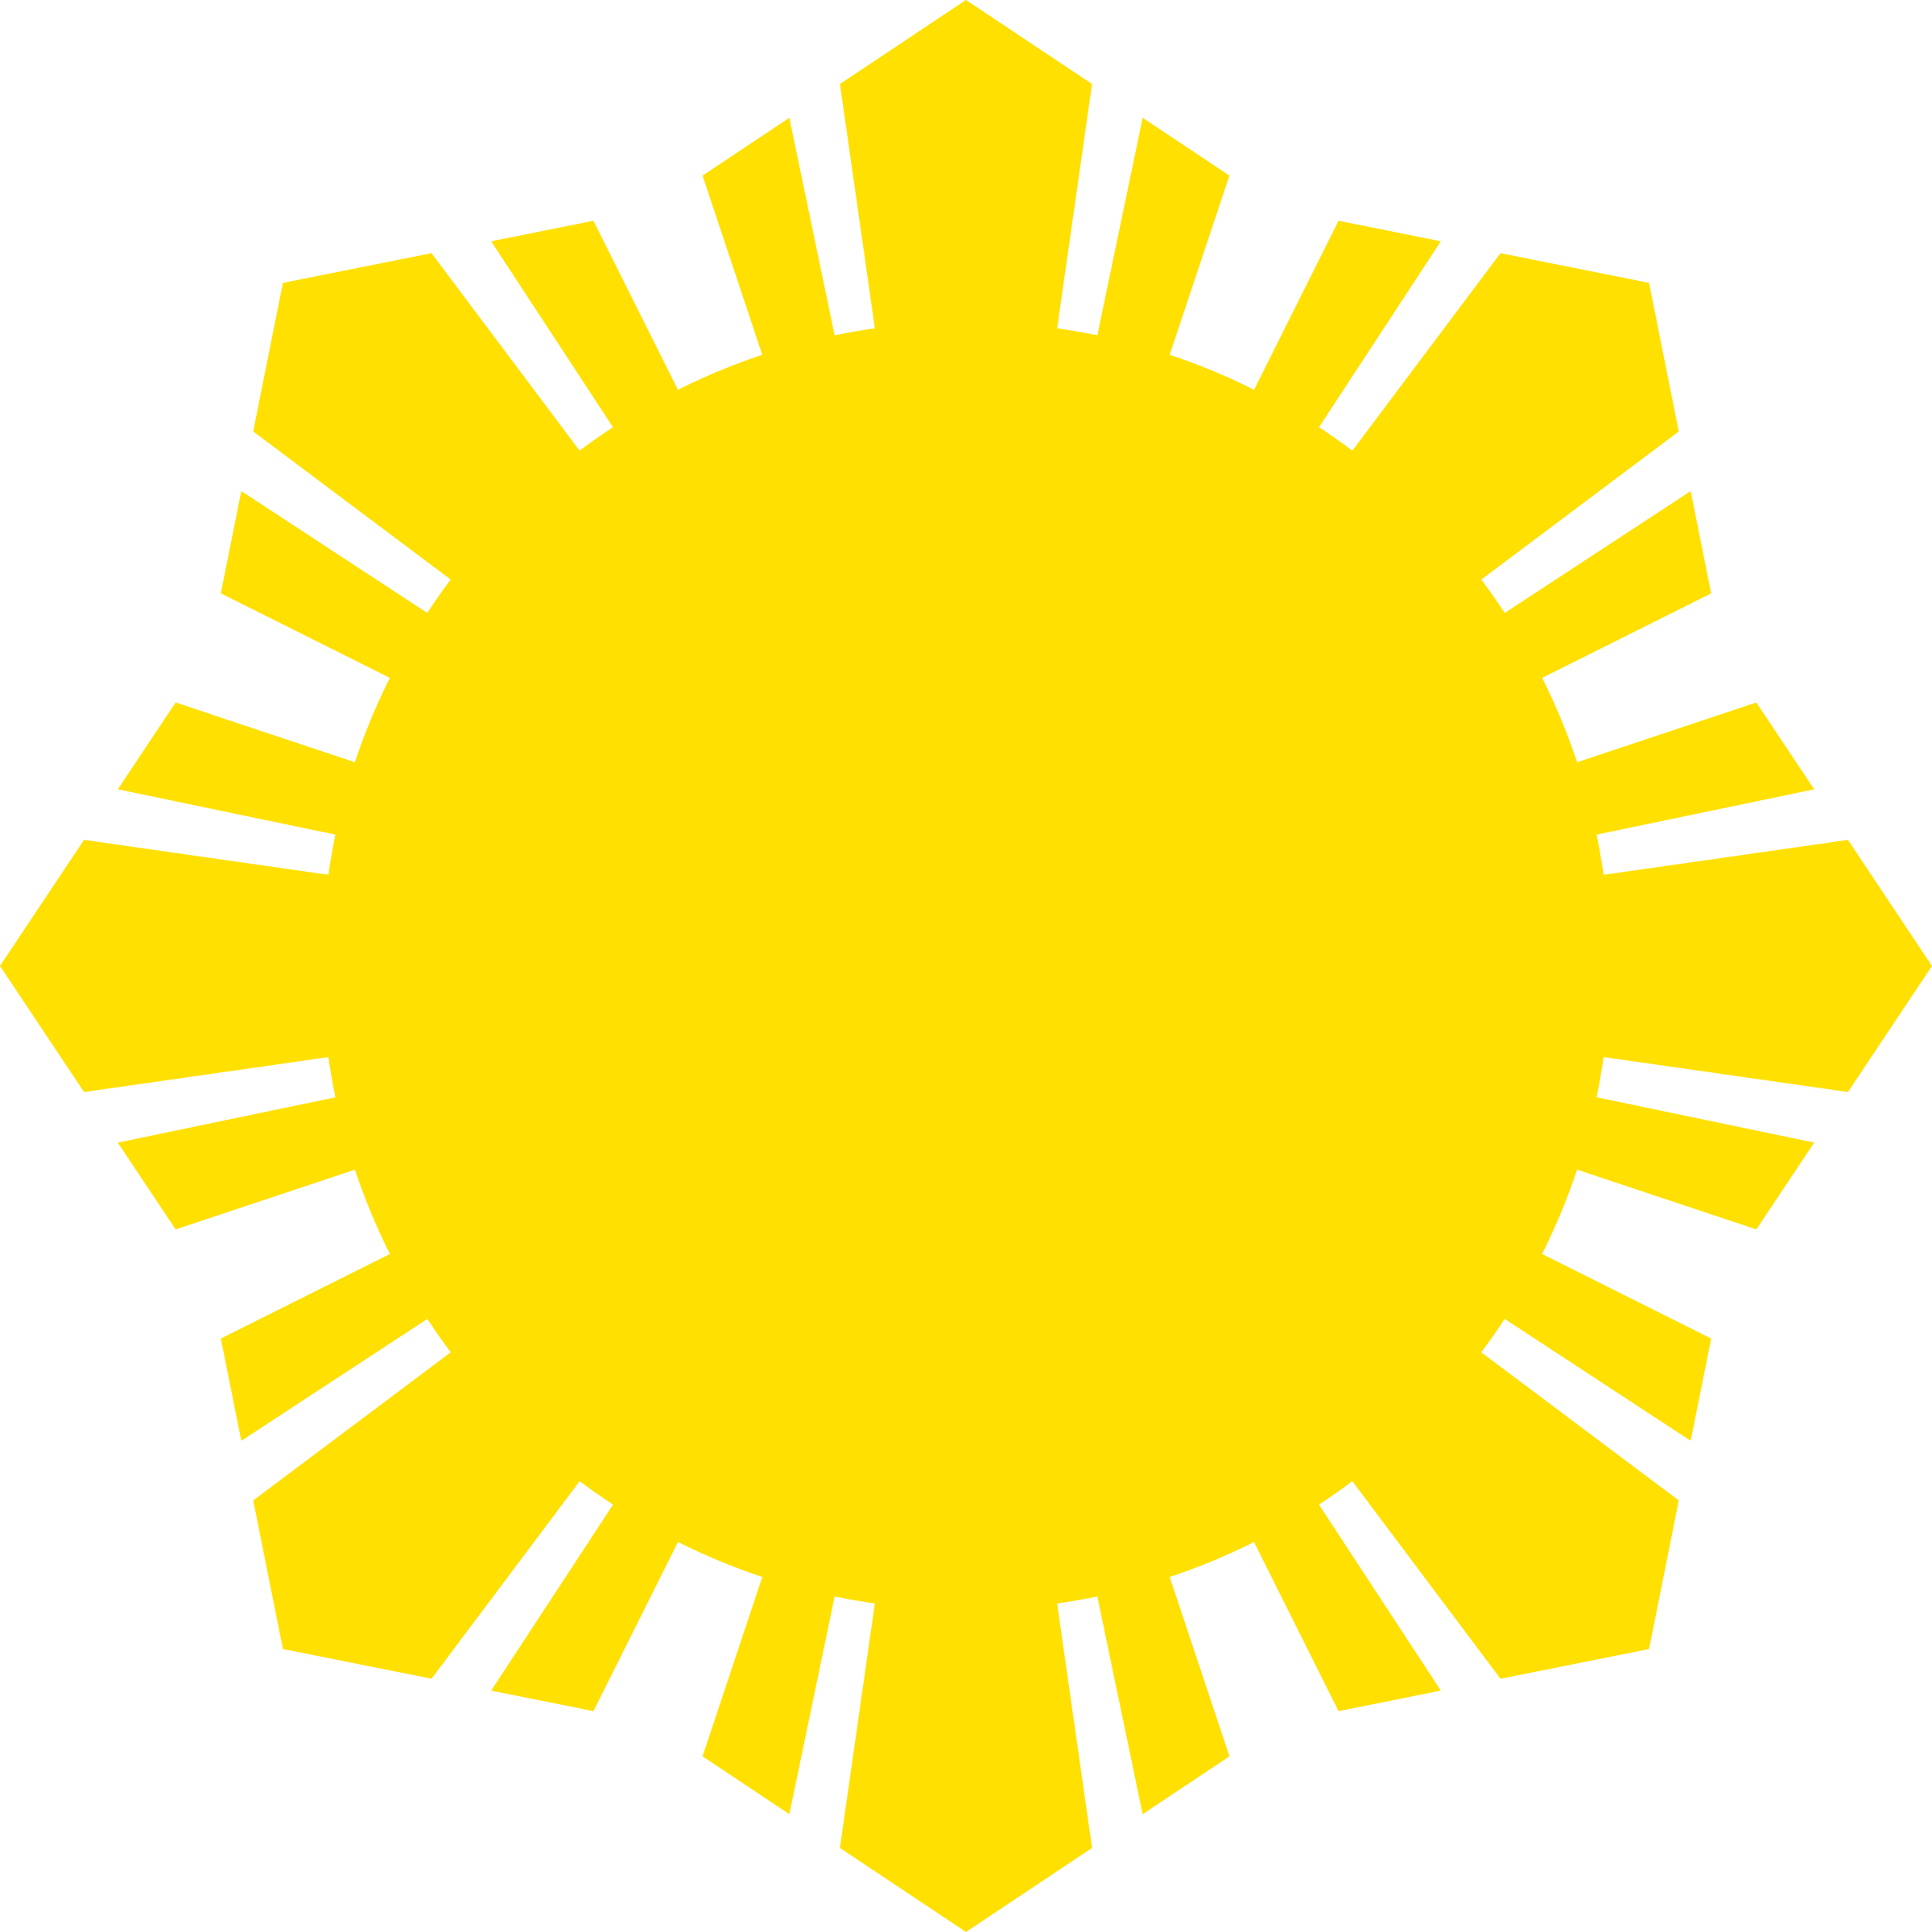 Philippines sun clipart free Clipart - Sun Symbol Small Yellow free